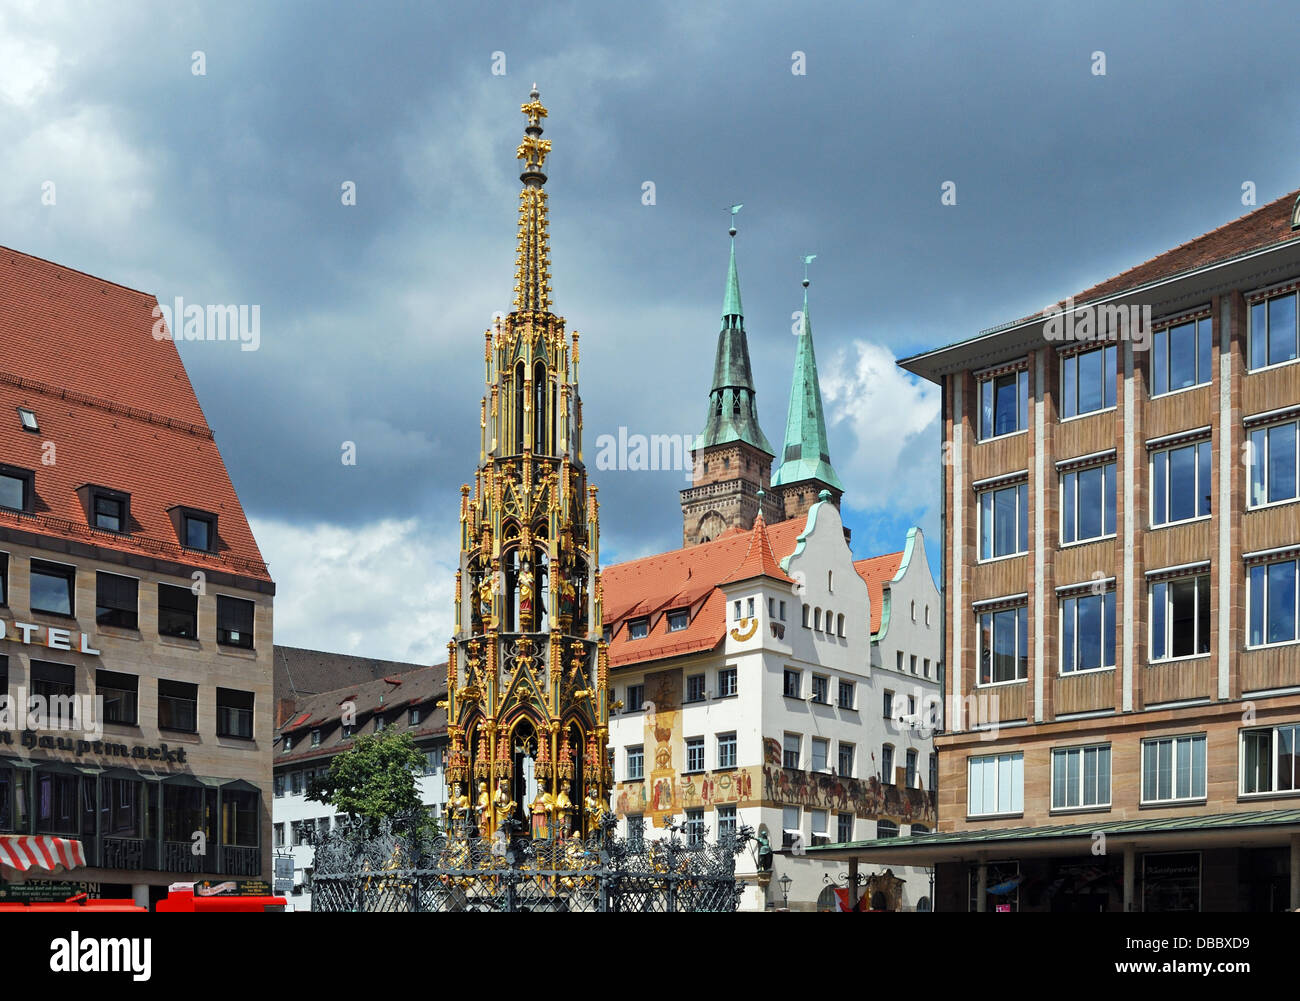 nuremberg schoner brunnen stockfotos nuremberg schoner brunnen bilder alamy. Black Bedroom Furniture Sets. Home Design Ideas